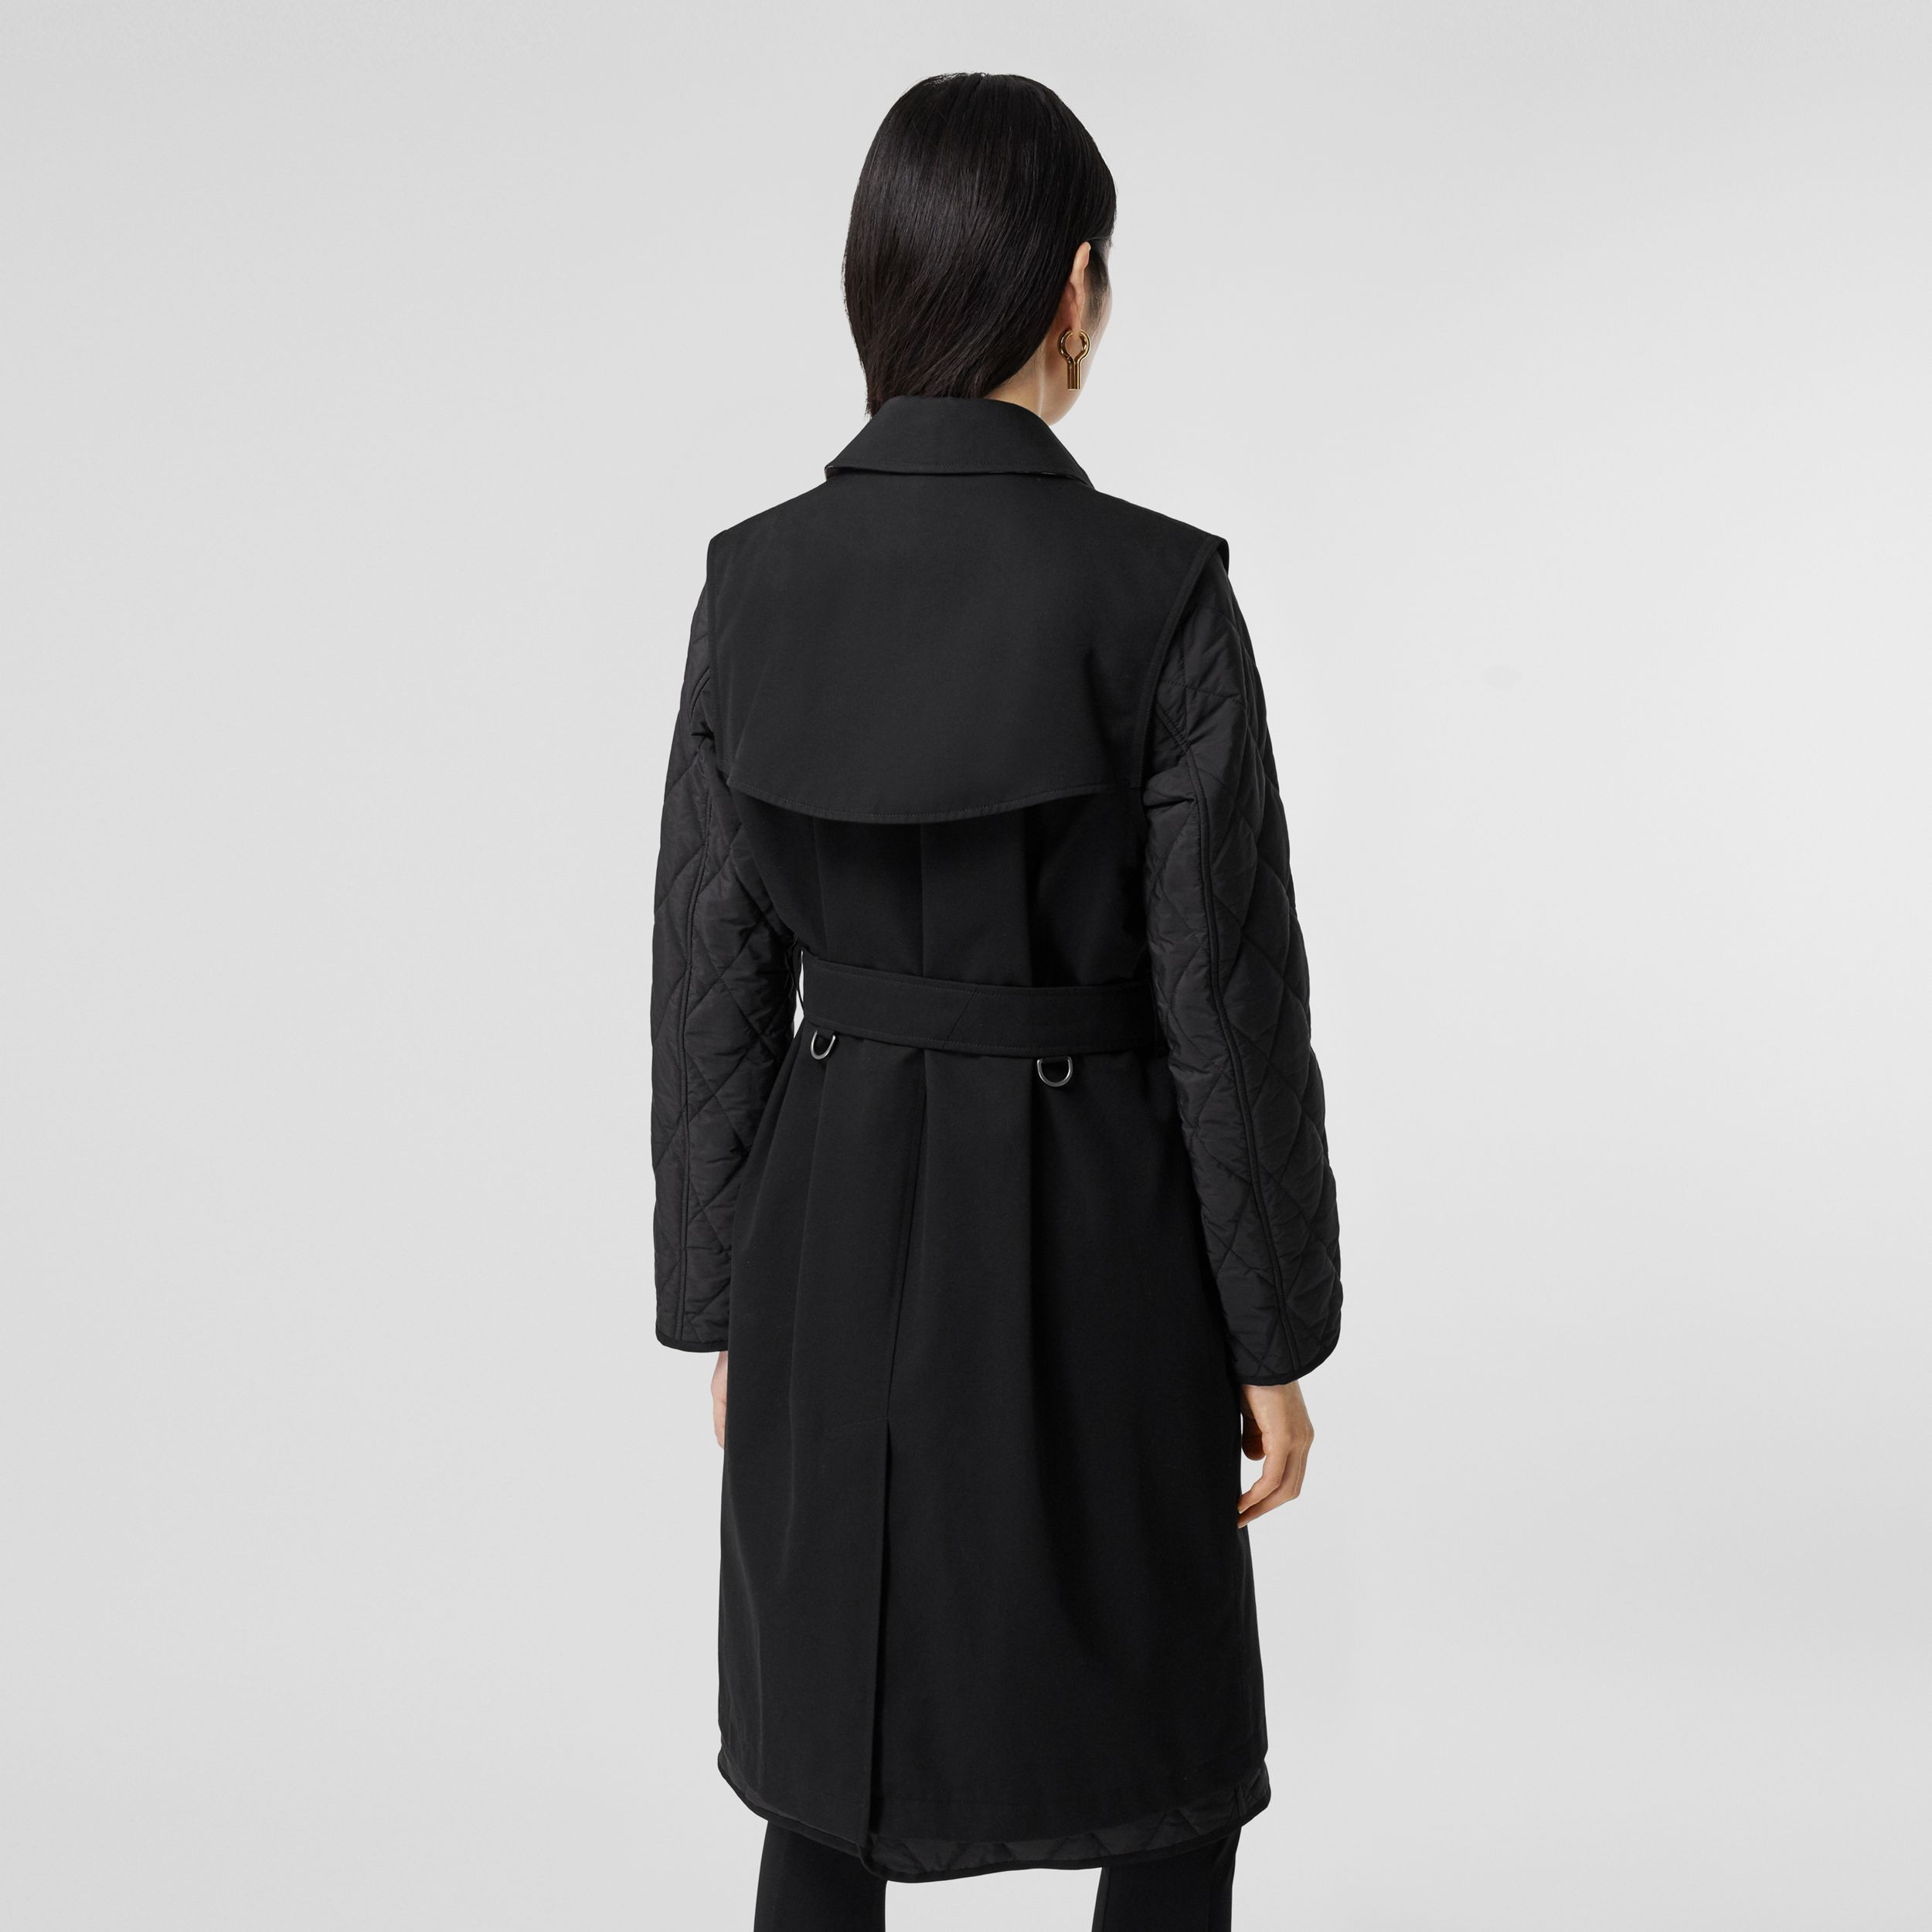 Sleeveless Trench Coat with Detachable Warmer in Black - Women | Burberry - 3